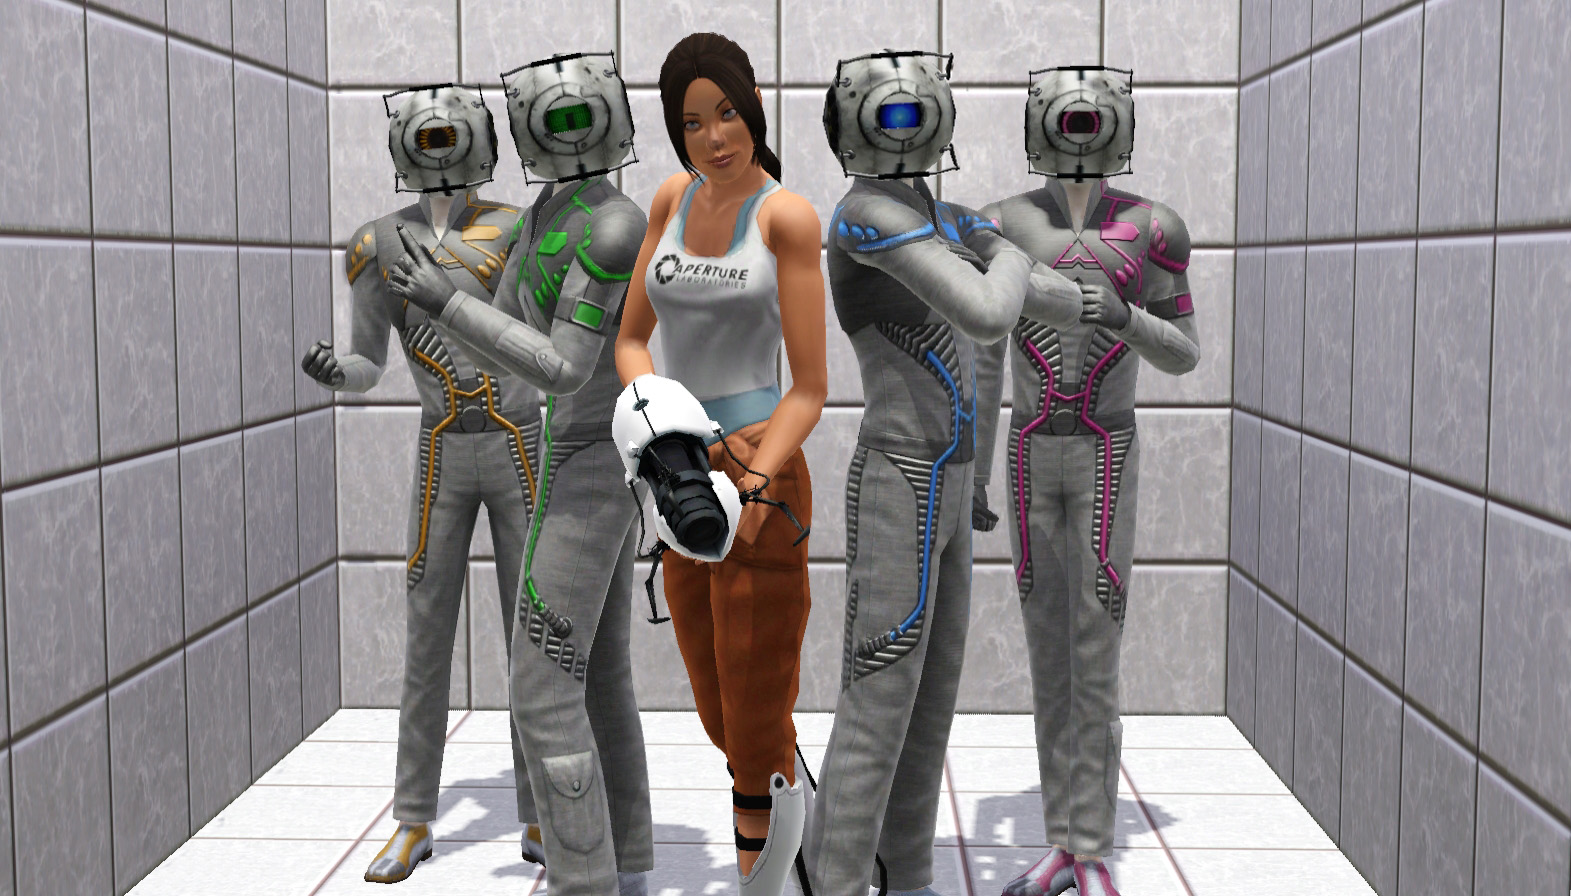 Chell and the Cores (Sims 3) by CamKitty2.